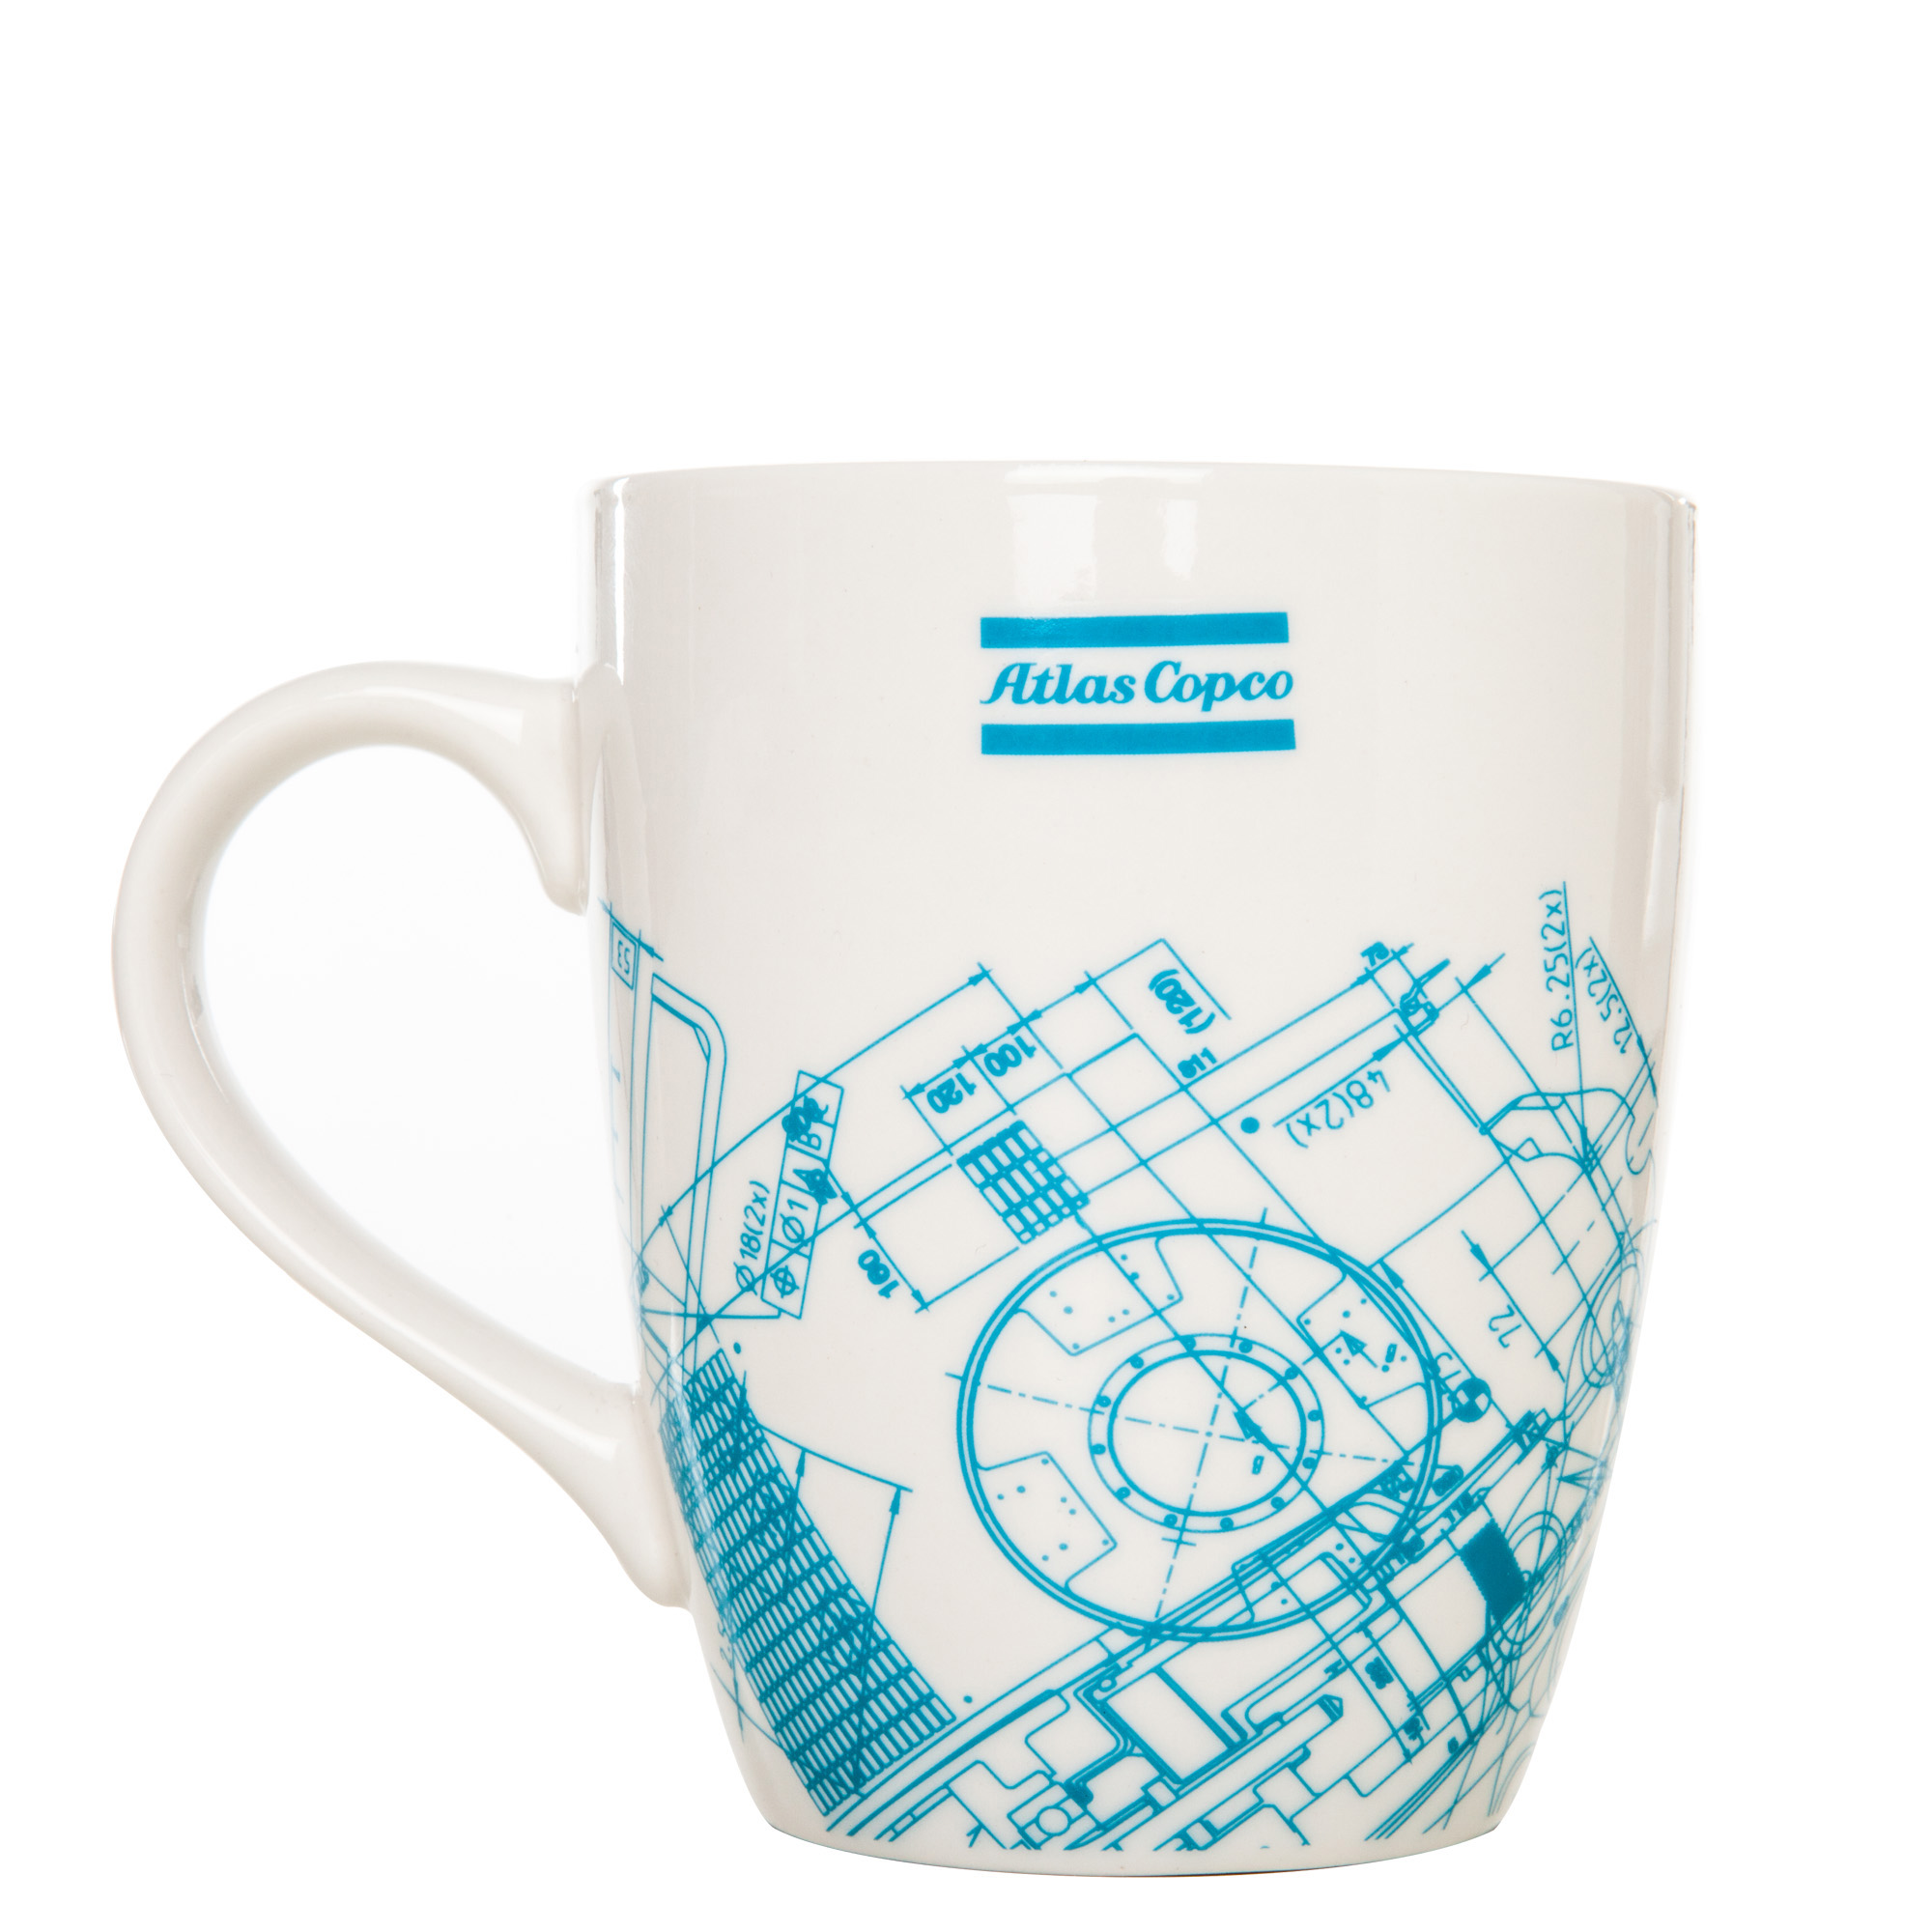 Classic white porcelain mug with all over print. The mugs are delivered in a bulk package.